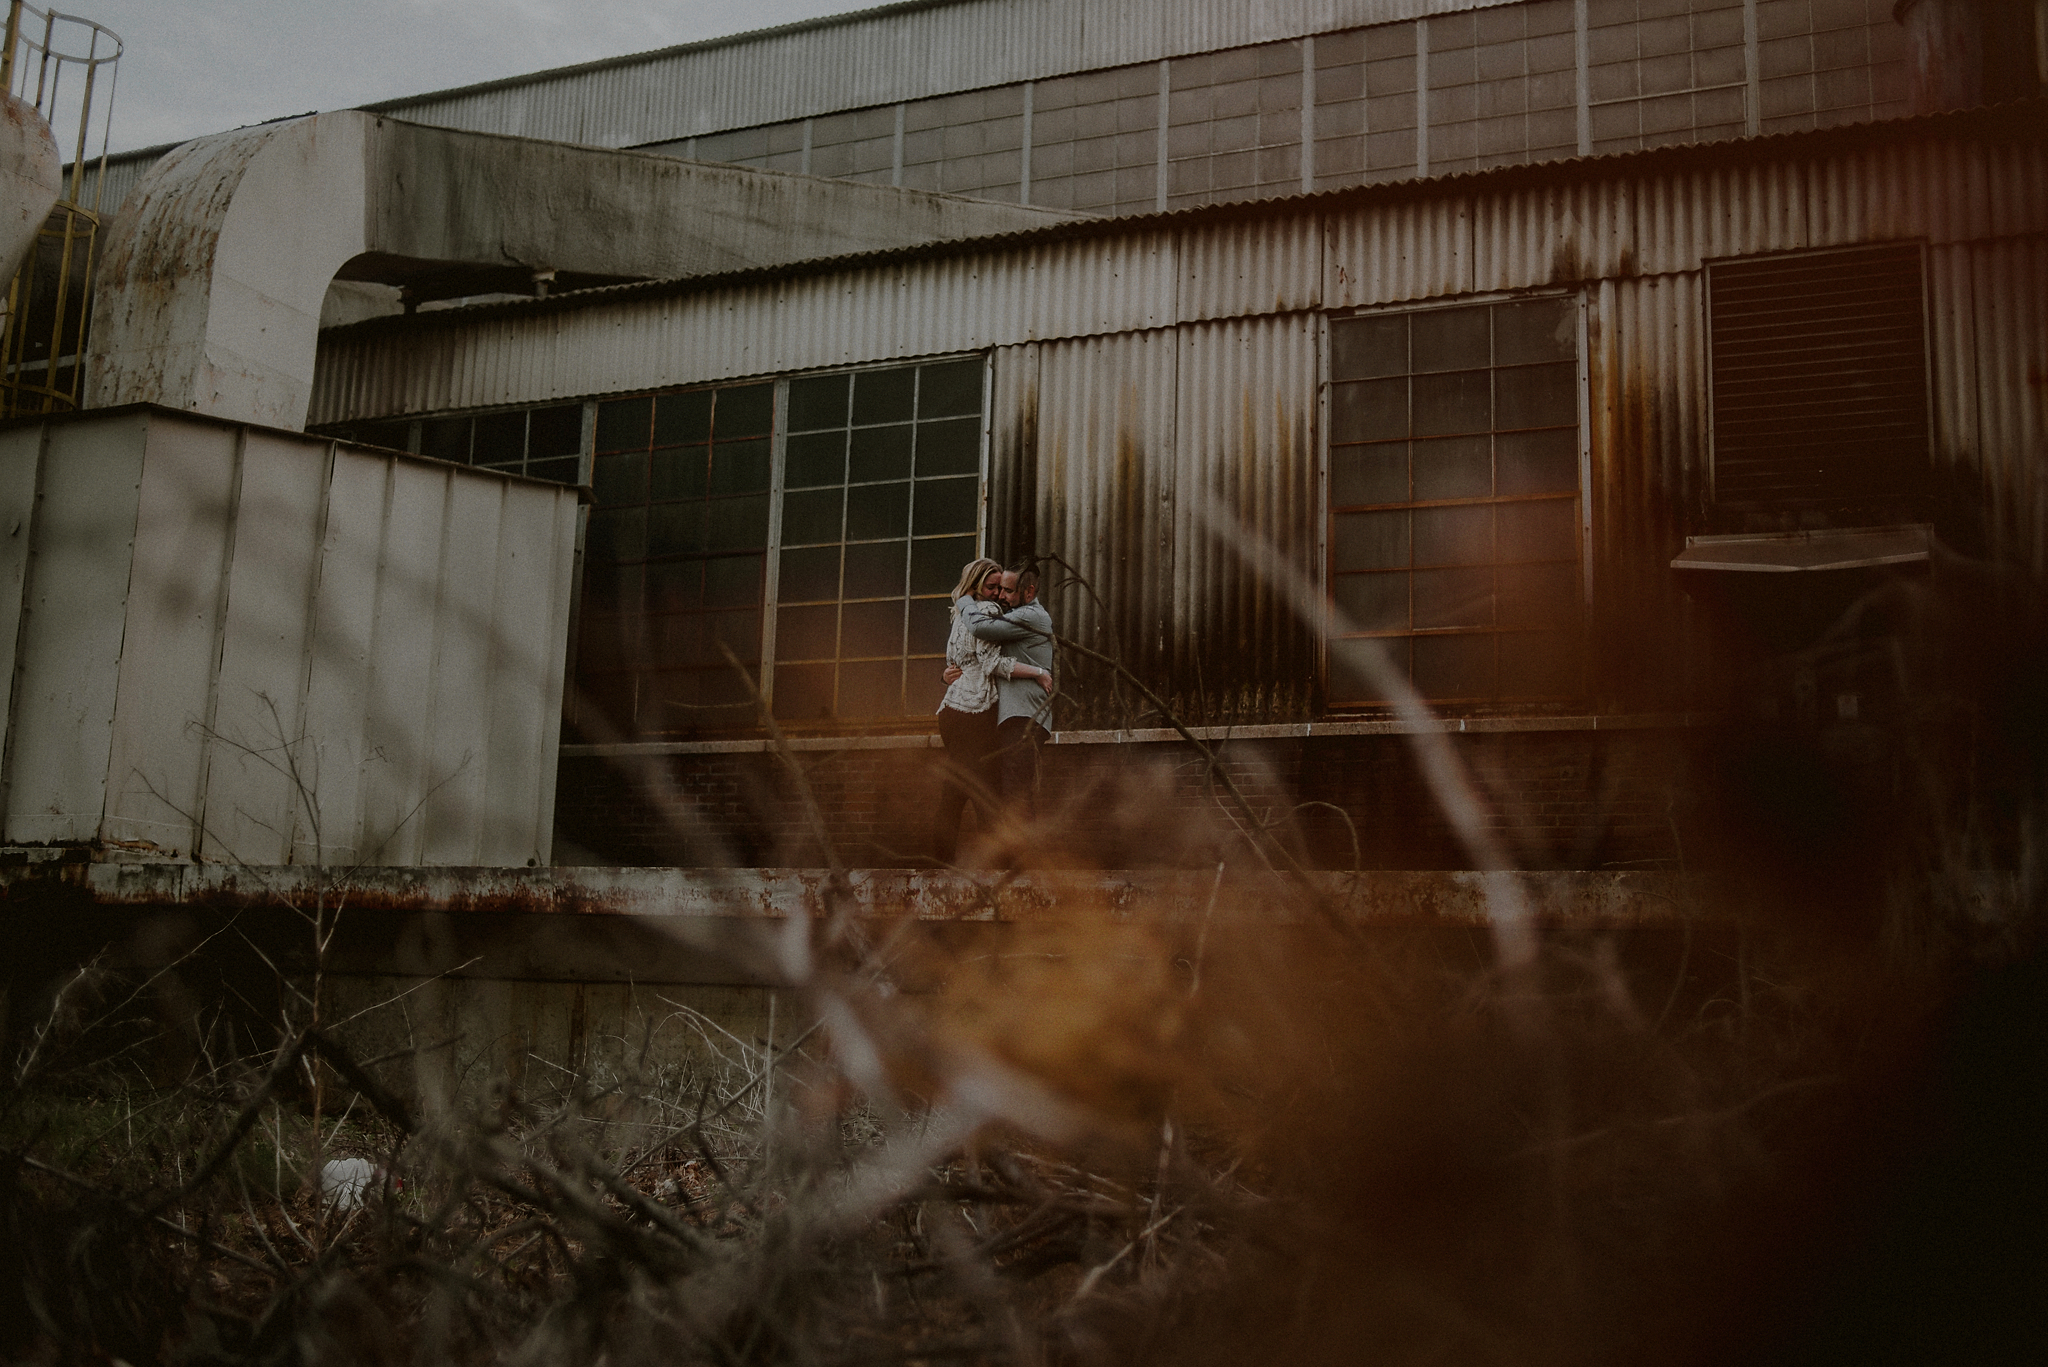 couple in grungy landscape